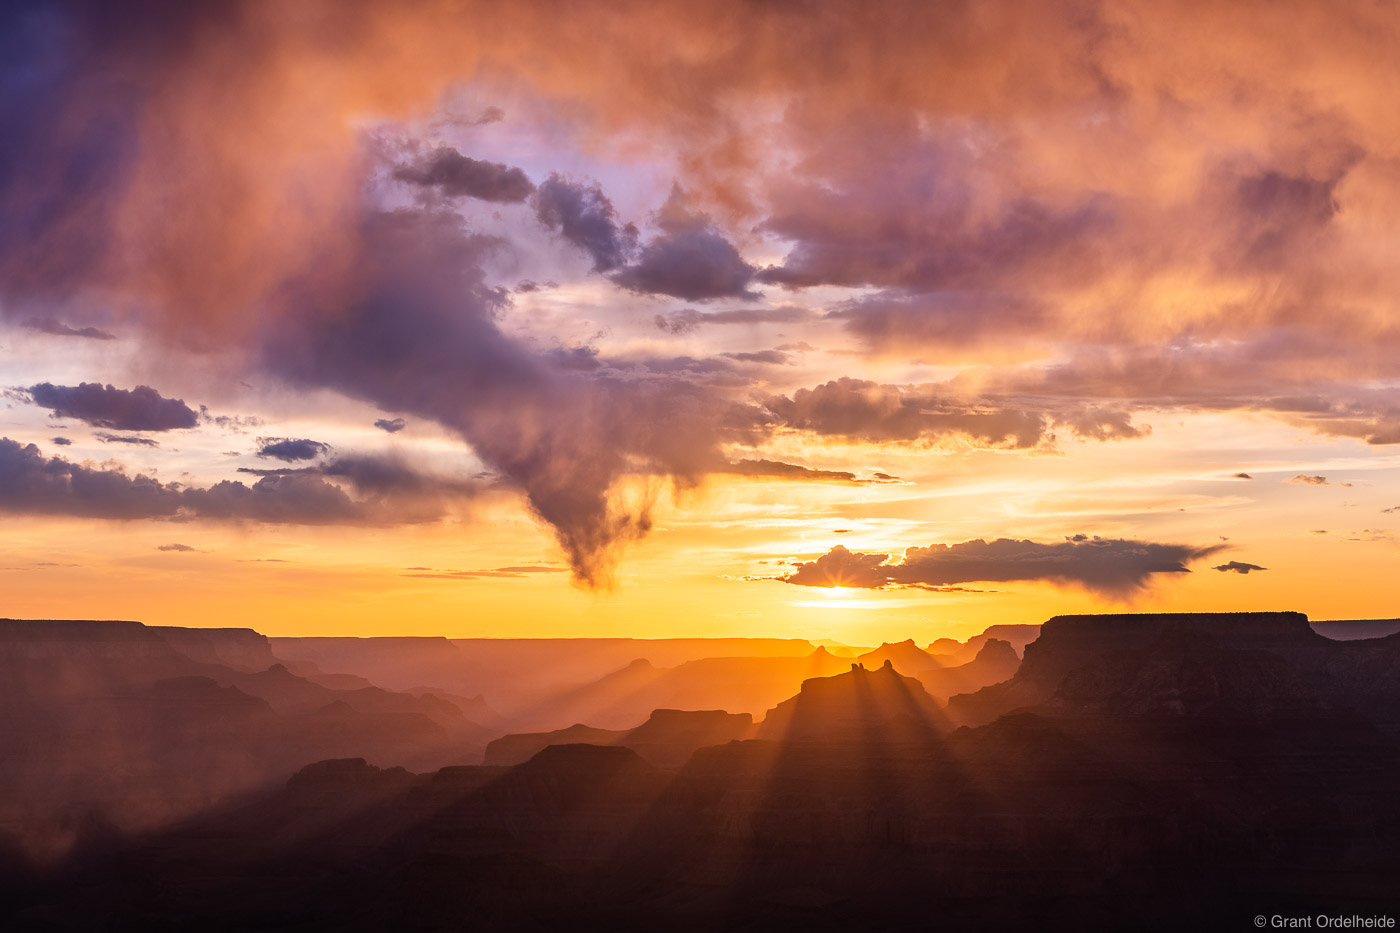 grand, canyon, sunset, national, park, arizona, south, rim, desert, view, photo